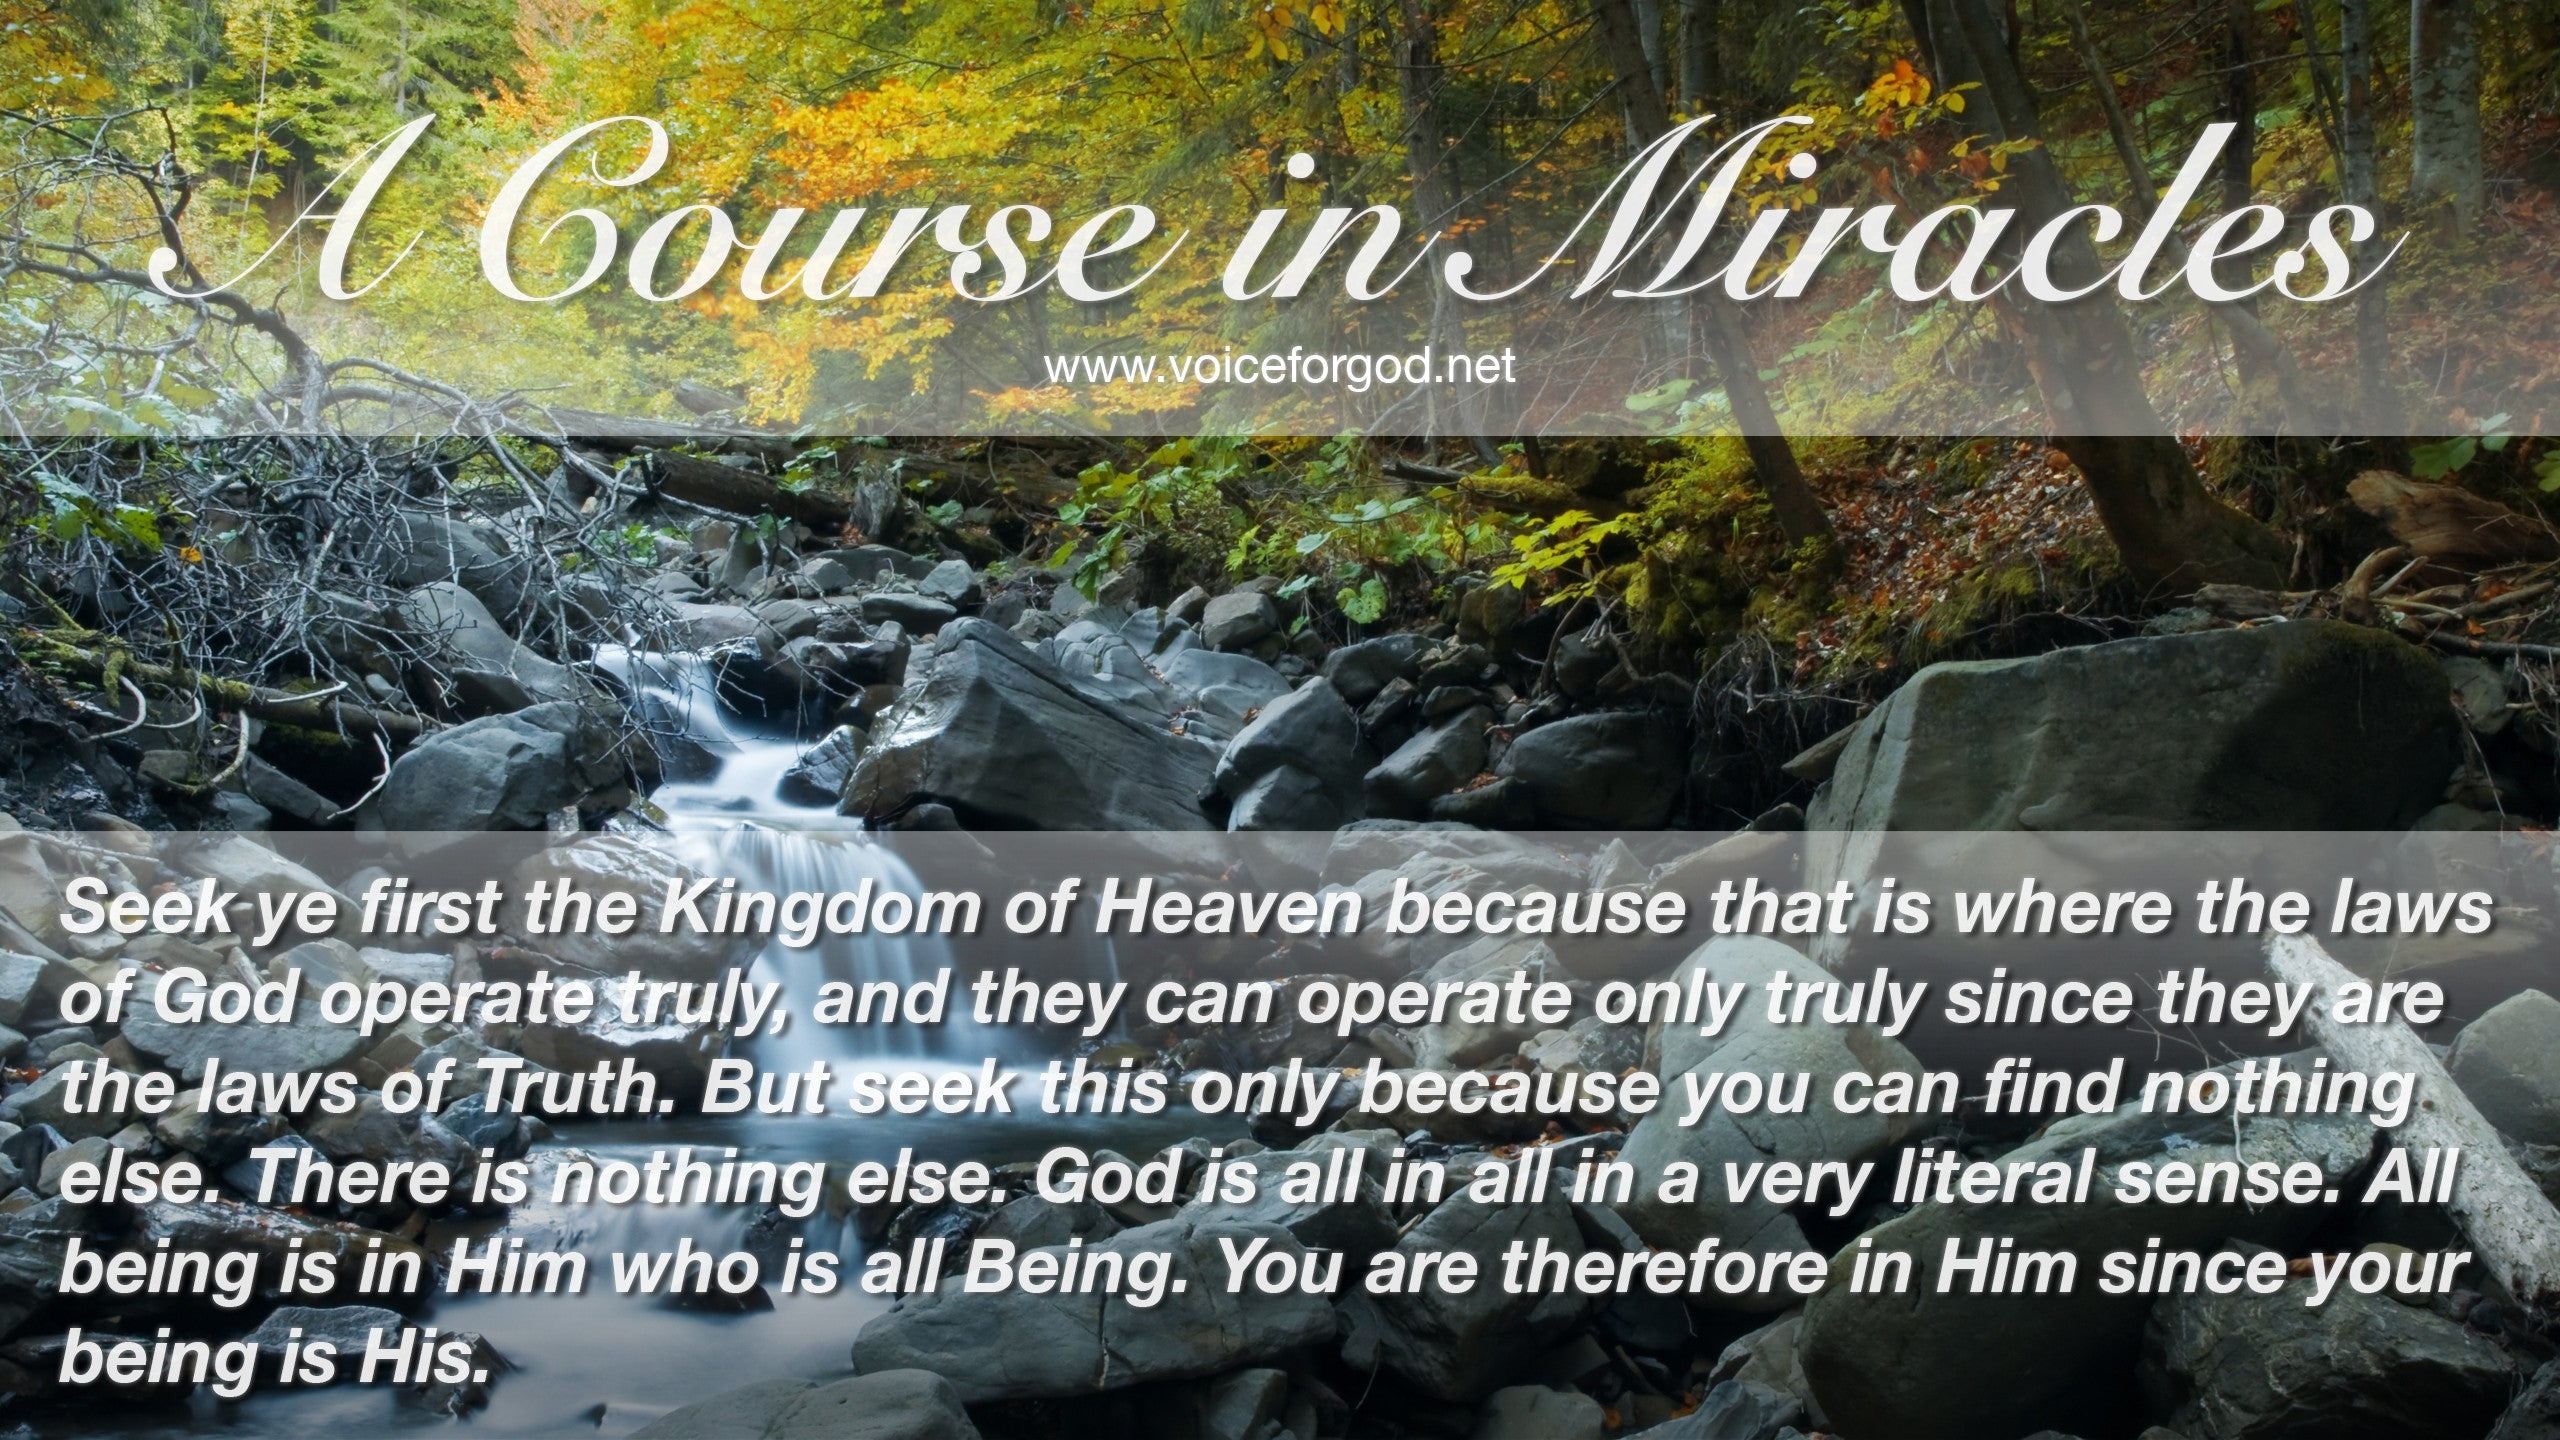 Acim Acim Quote 1004 A Course In Miracles Quotes Voice For God